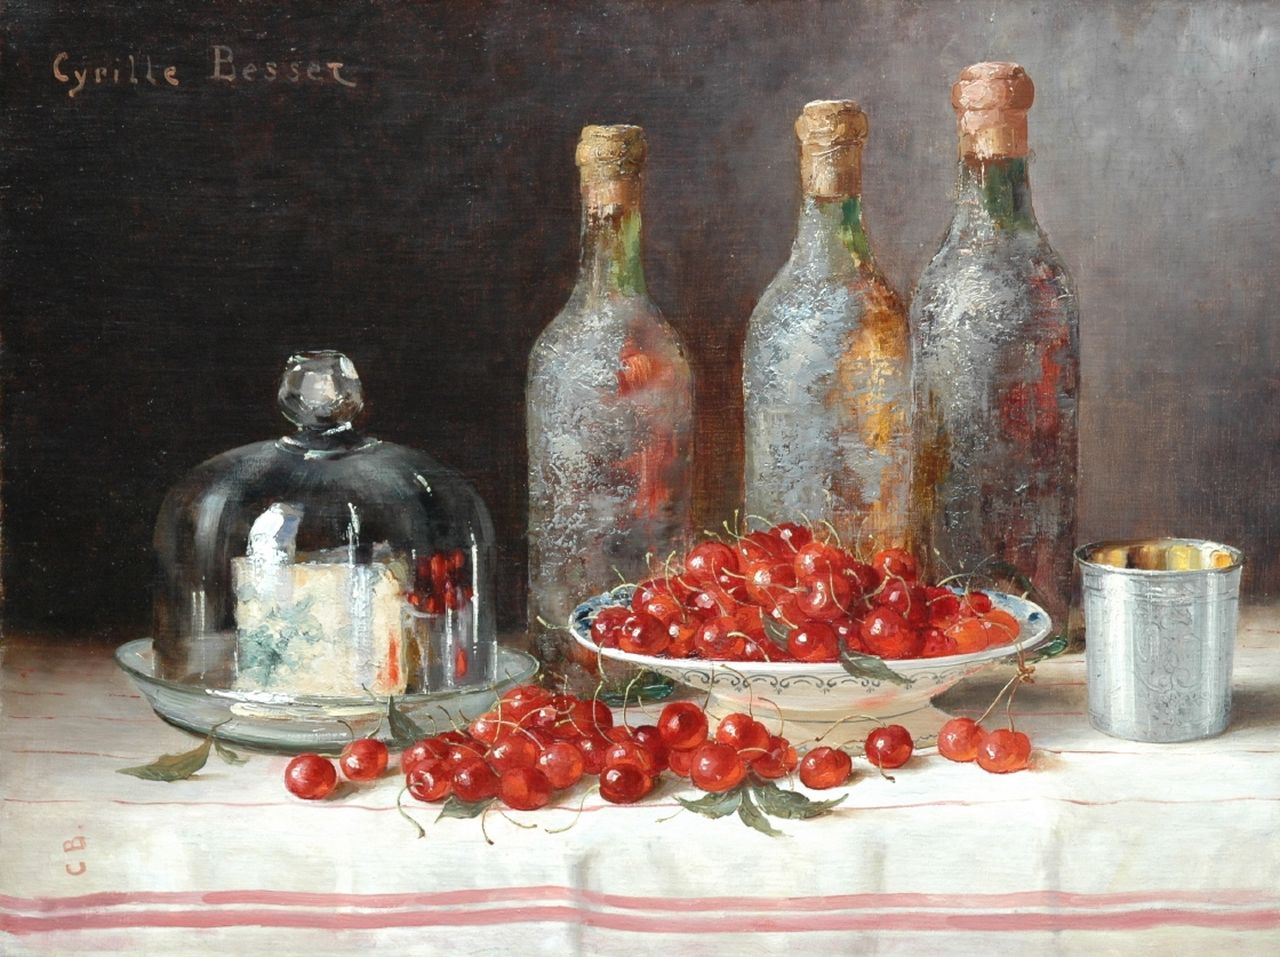 Besset C.  | Cyrille Besset, A still life with bottles, cheese and cherries, oil on canvas 49.4 x 65.0 cm, signed u.l. and l.l. with initials